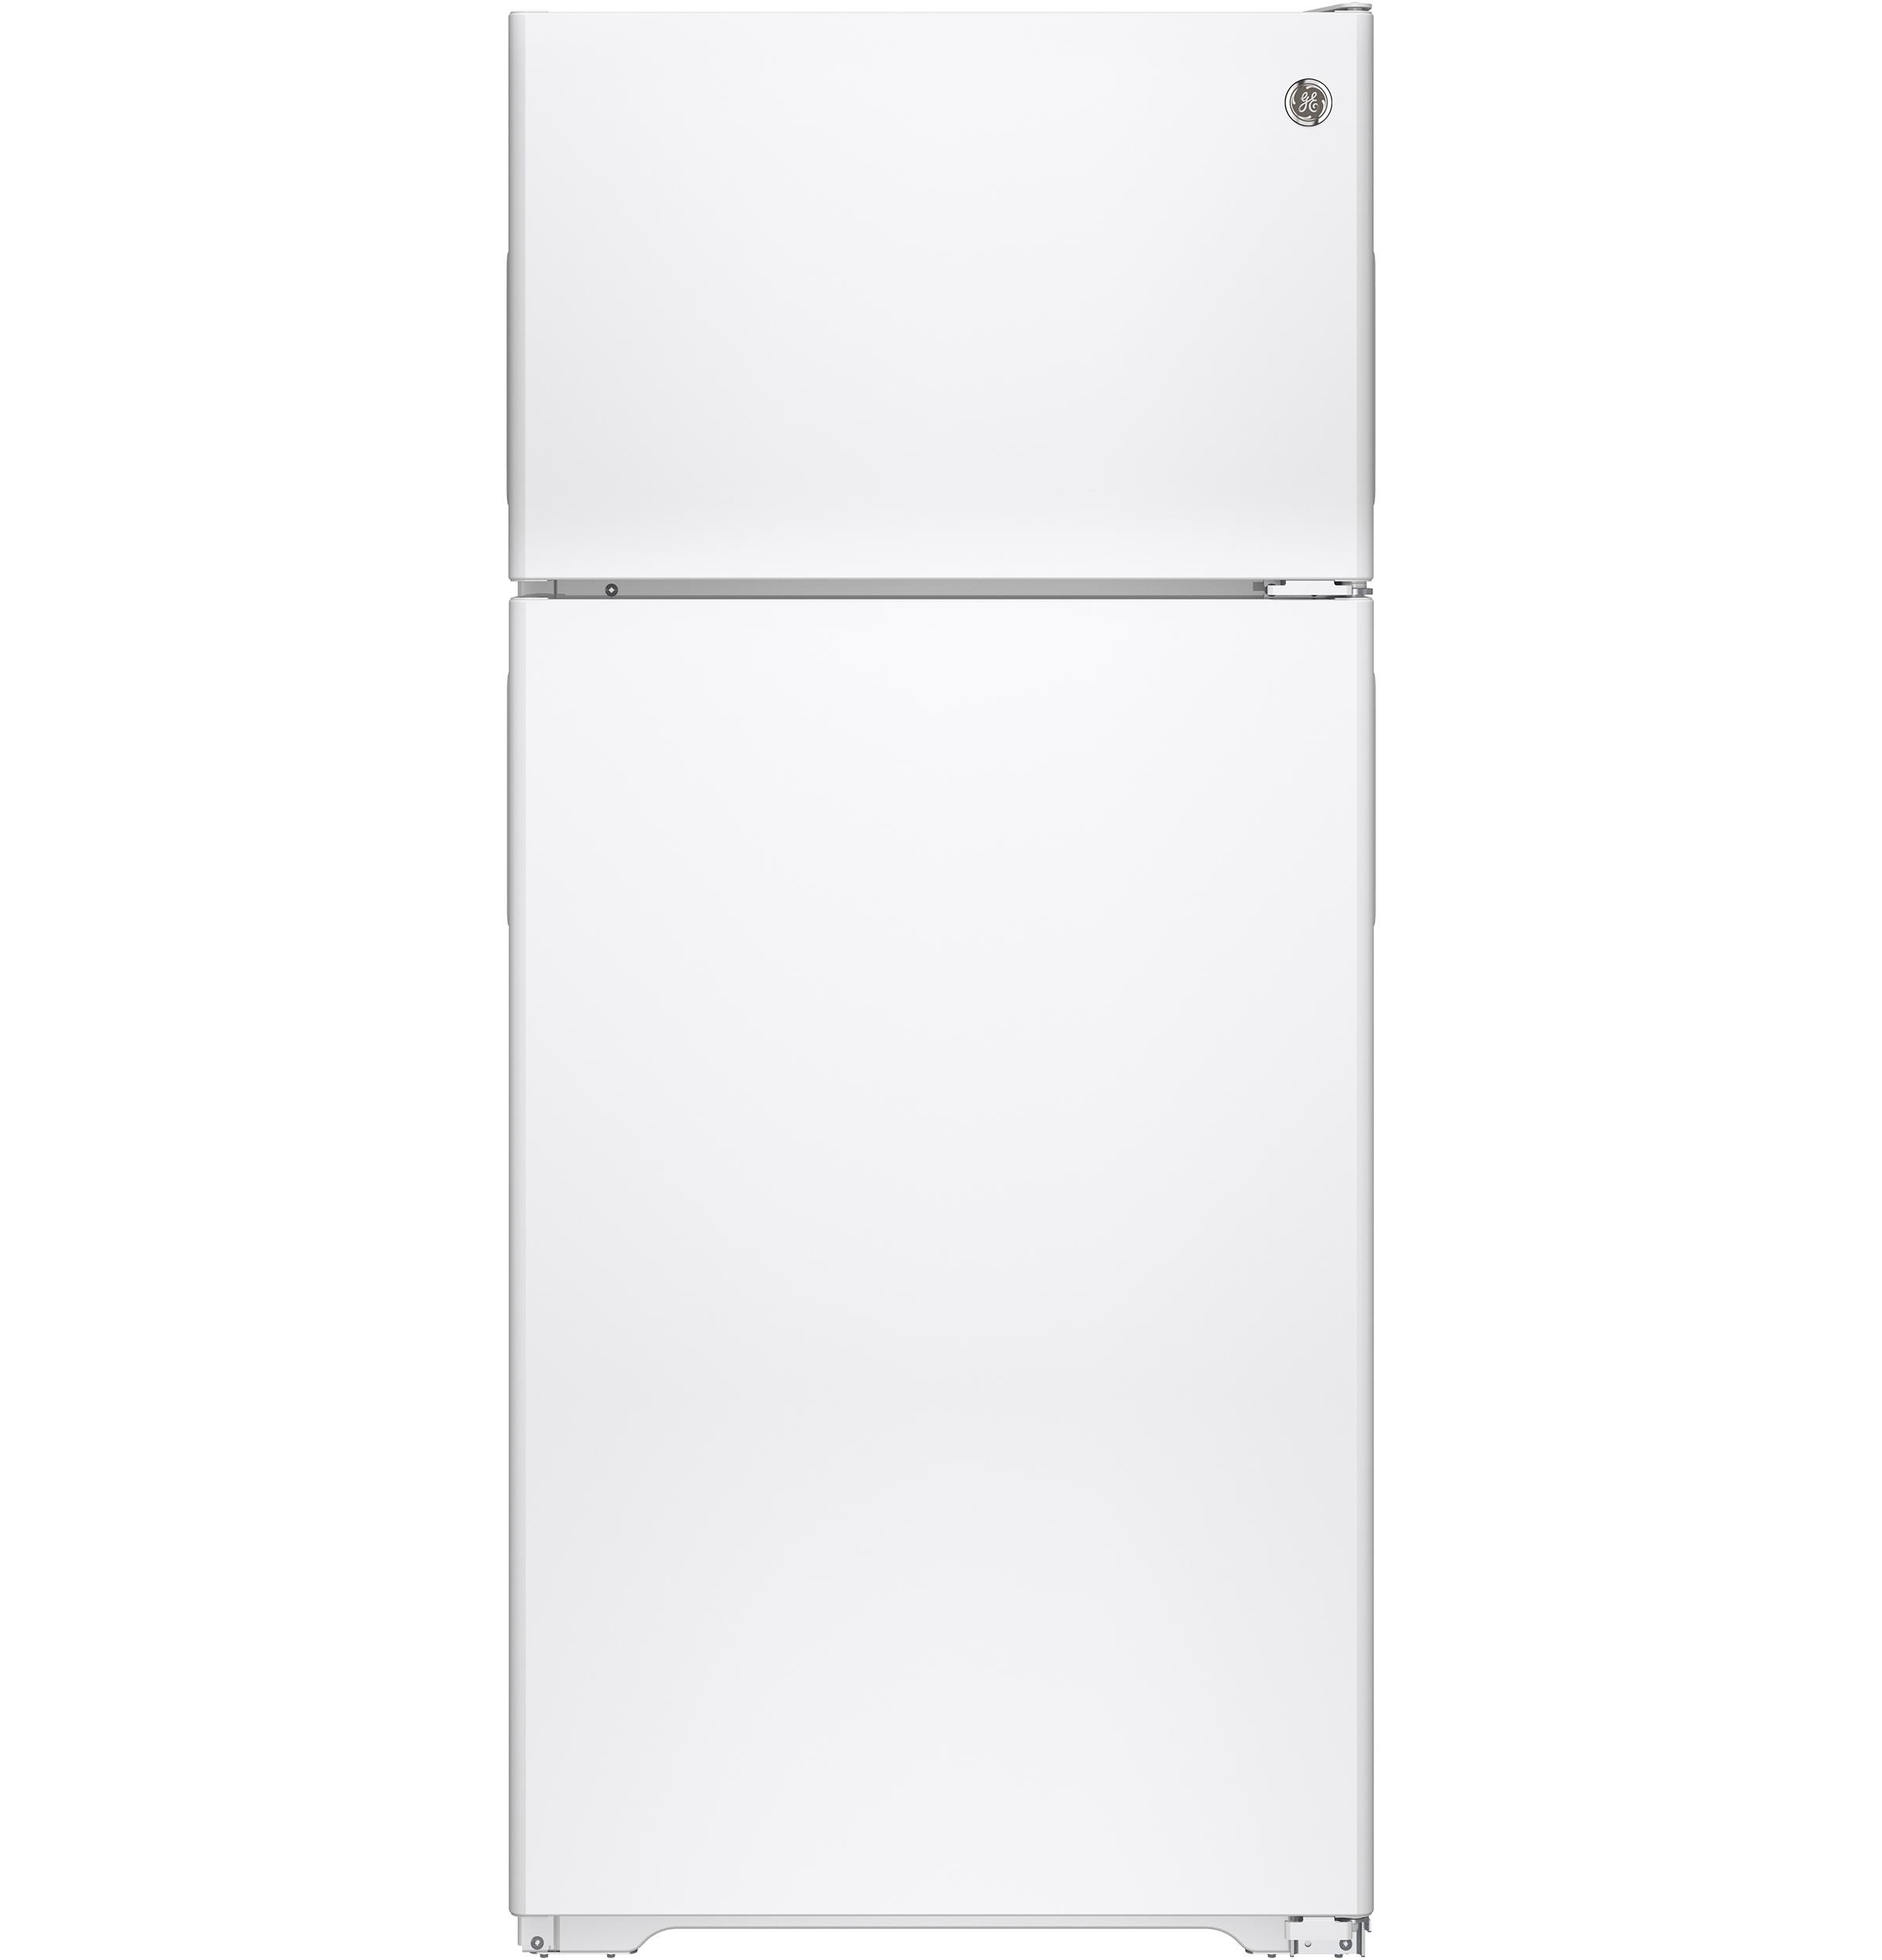 GEEnergy Star® 15.5 Cu. Ft. Recessed Handle Top-Freezer Refrigerator